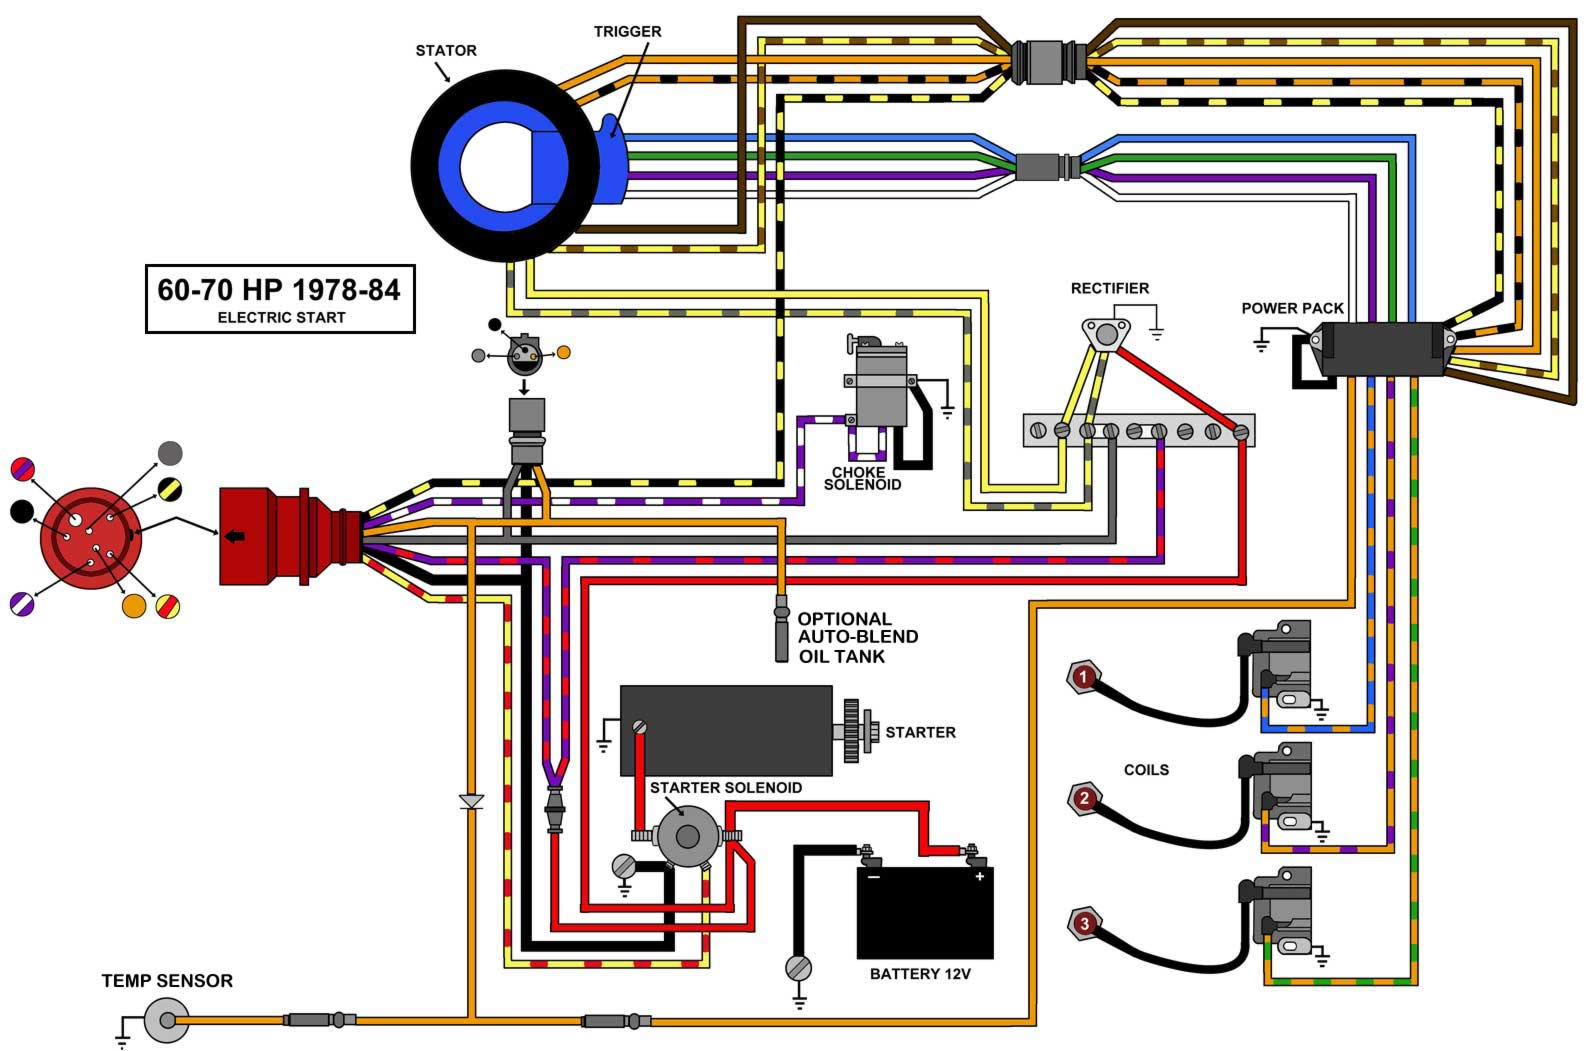 78 84_3 CYL_EL omc wiring harness diagram johmson wiring harness \u2022 wiring Boat Ignition Switch Wiring Diagram at readyjetset.co